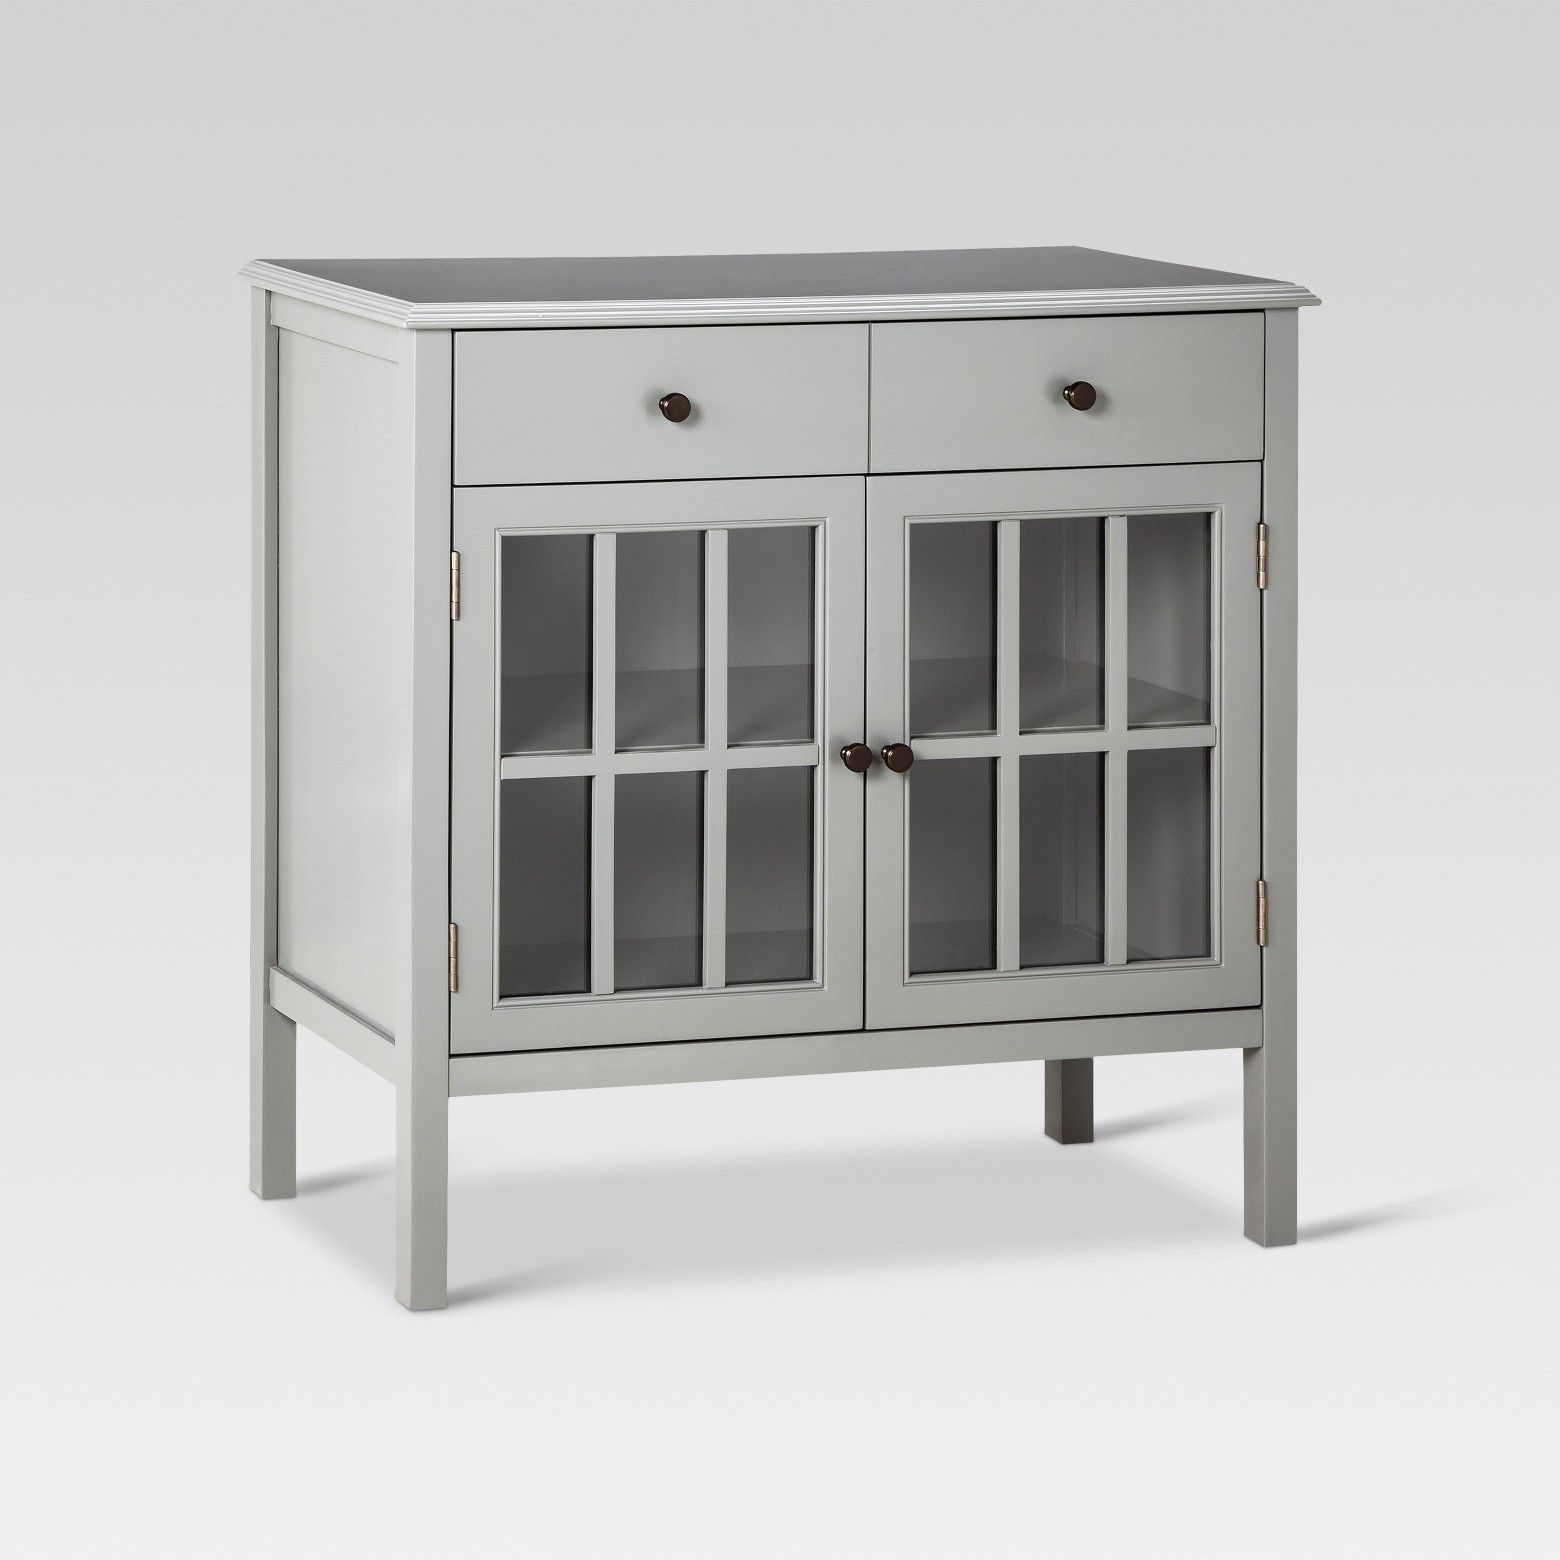 Windham 2 Door Cabinet With Drawers Threshold Target Storage Cabinet With Drawers Cabinet Drawers Cabinet